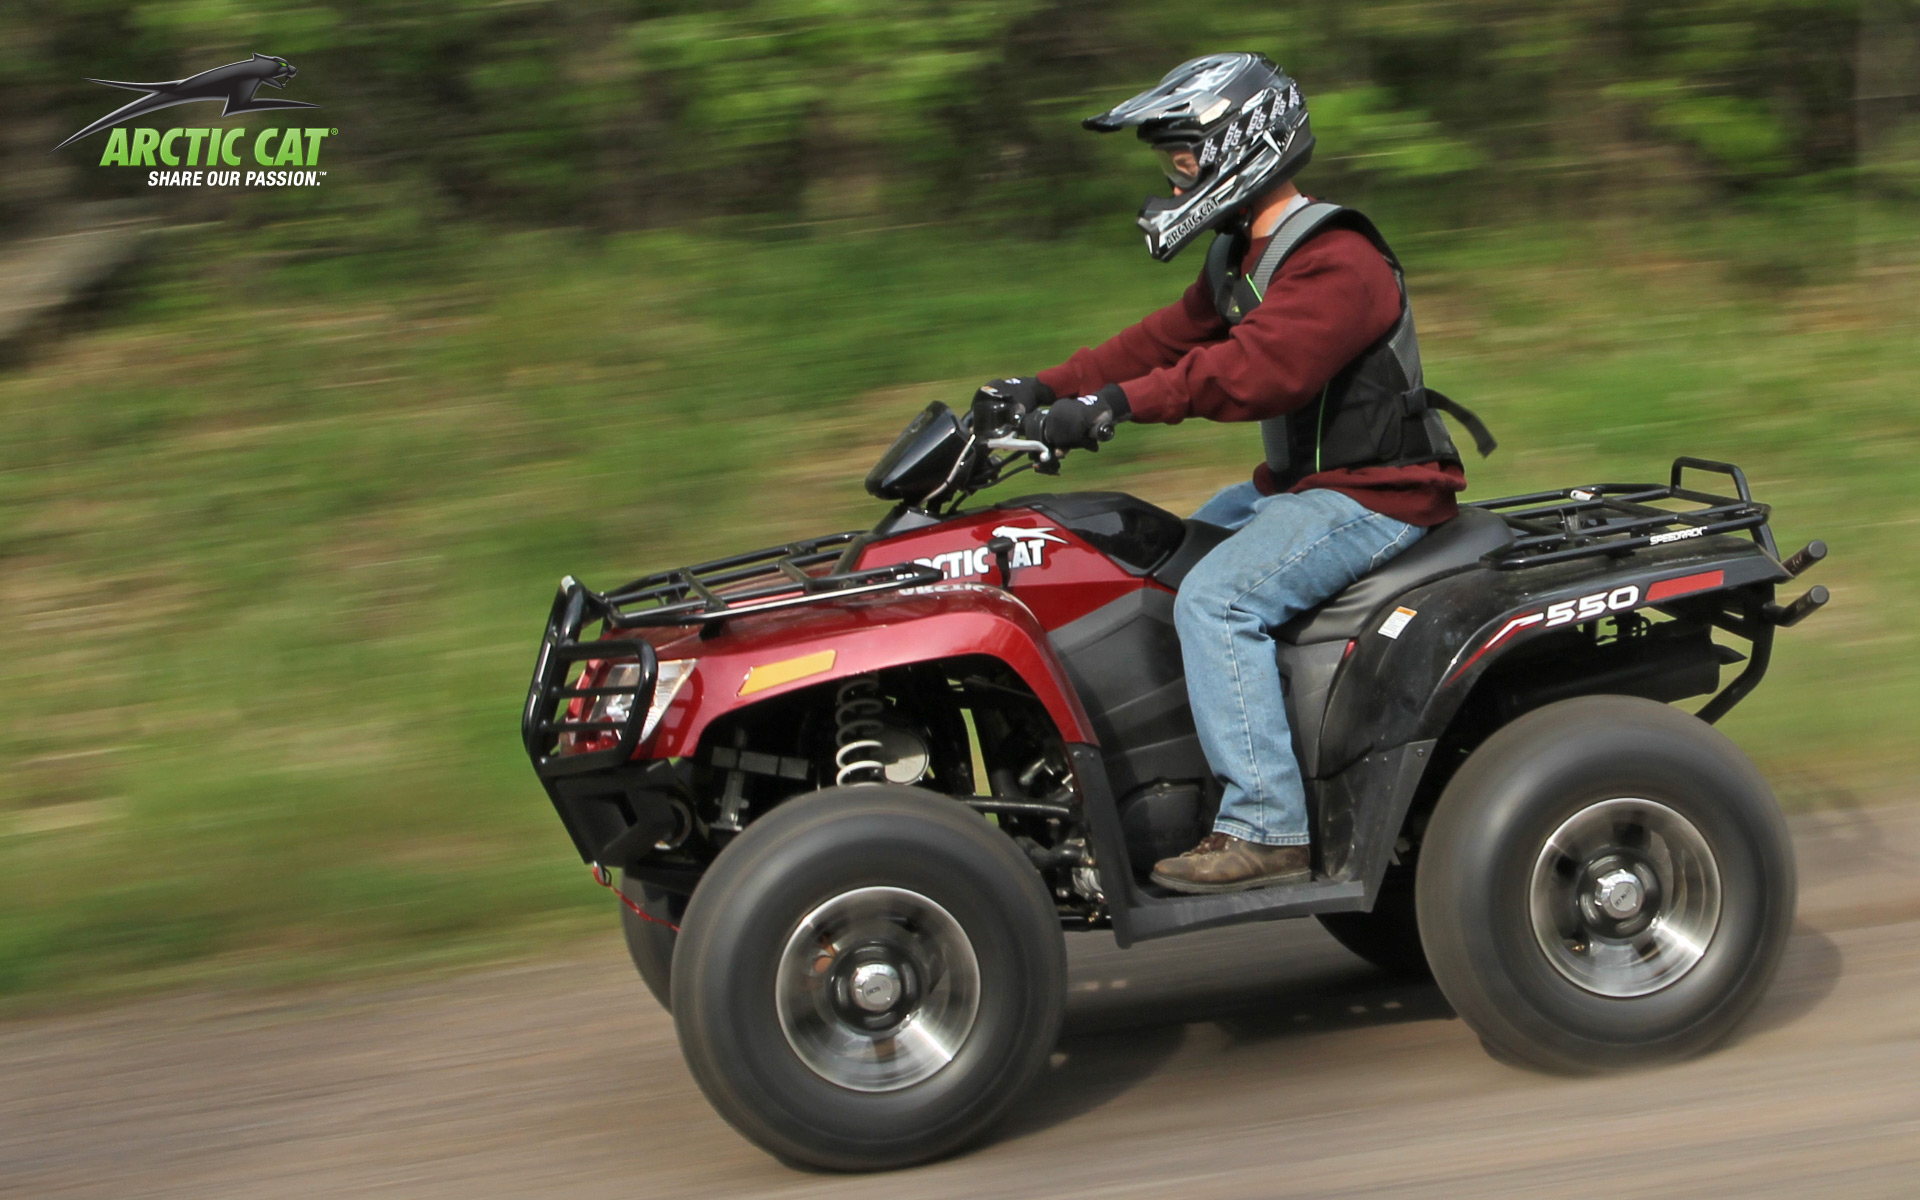 2013 arctic cat 550 limited  a middleweight recreational machine